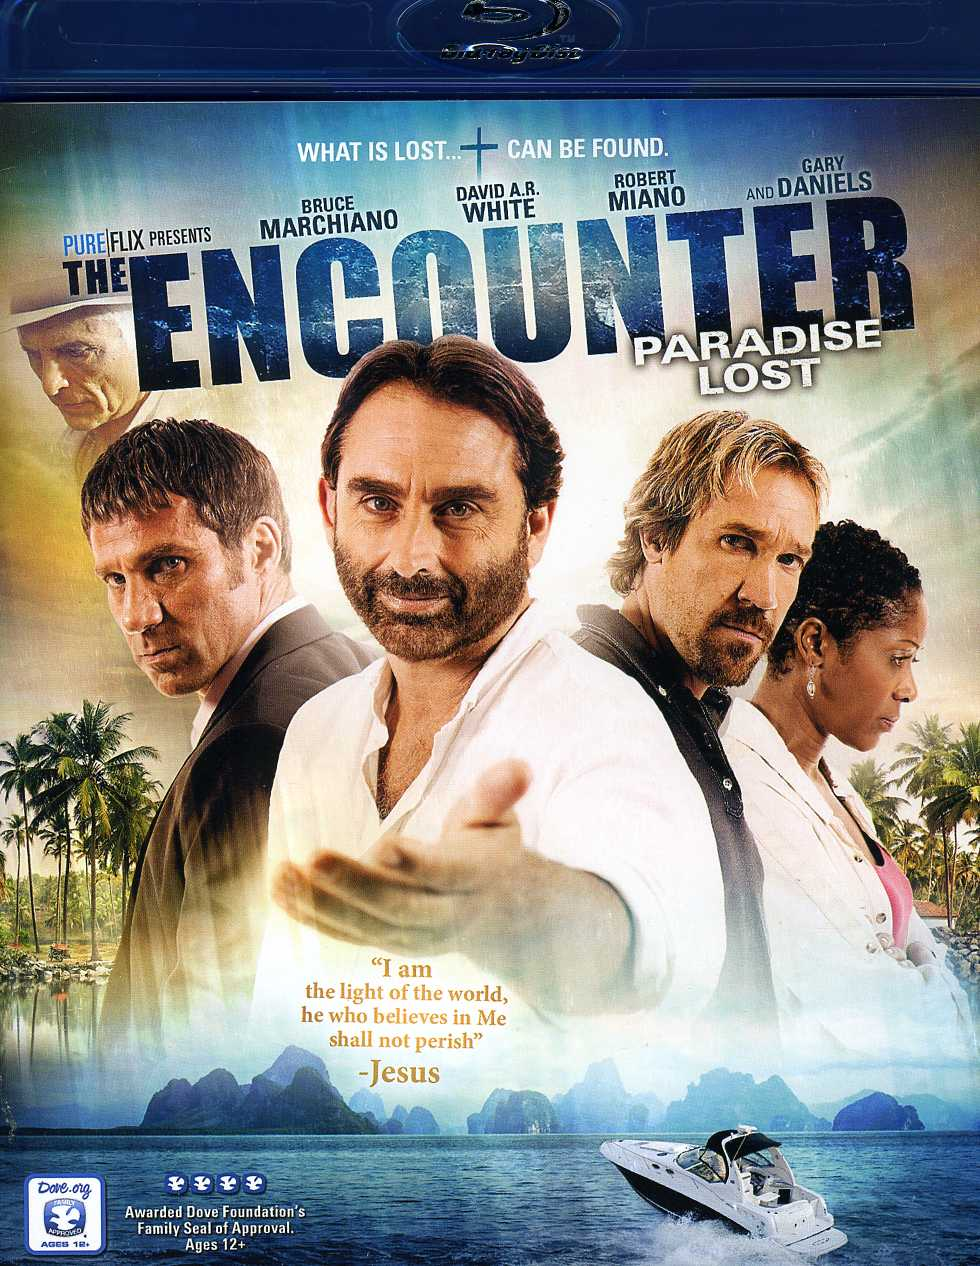 The Encounter Paradise Lost 2012 English Christian Movie Download